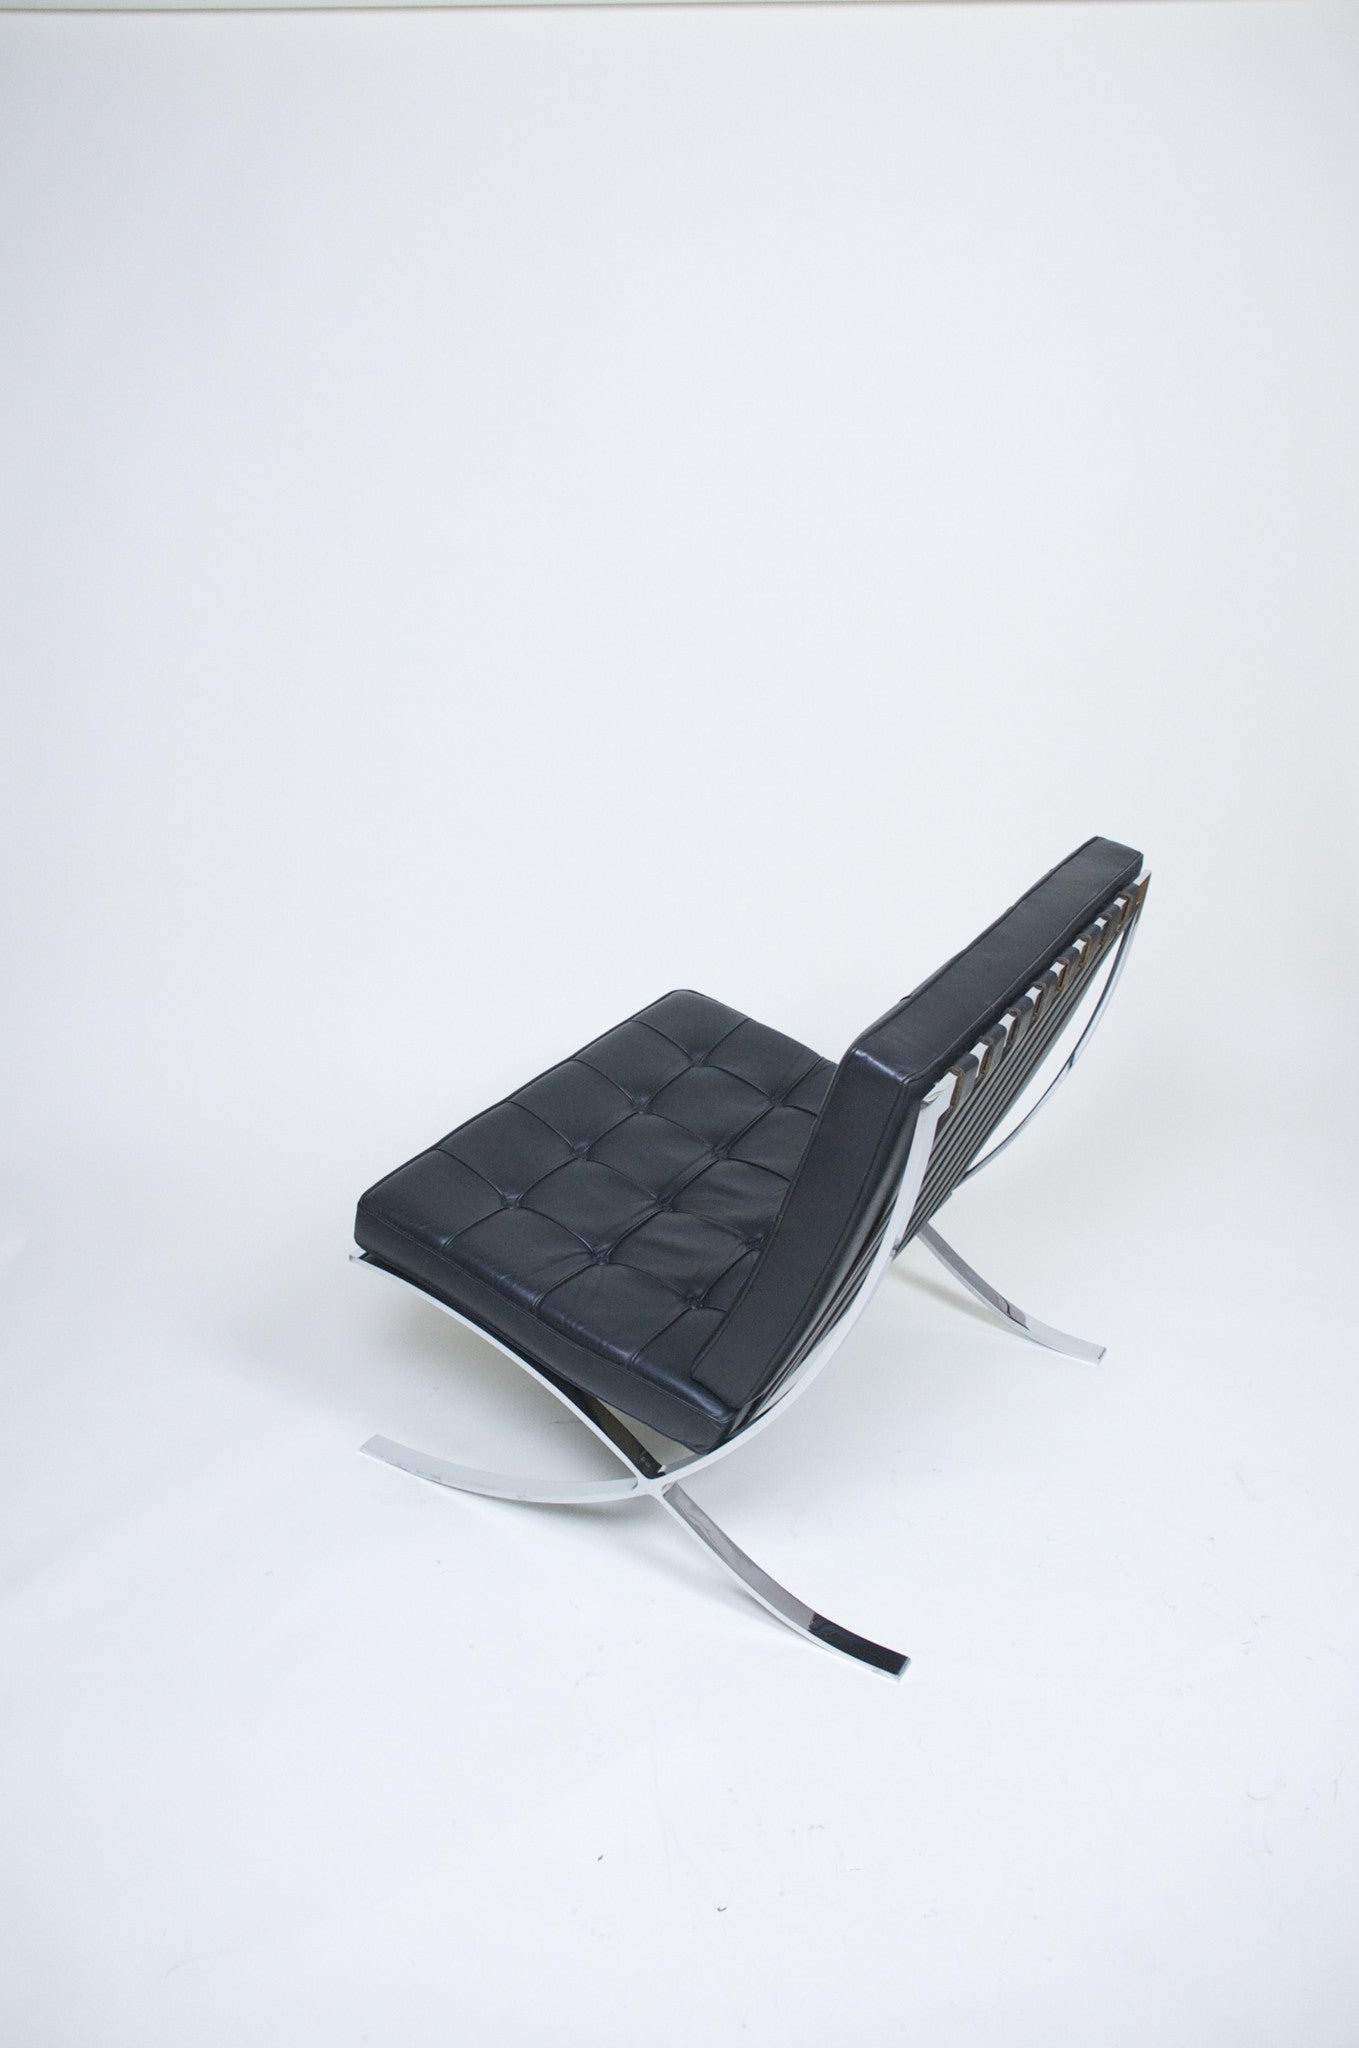 SOLD Knoll Barcelona Chair Mies Van Der Rohe Black Leather